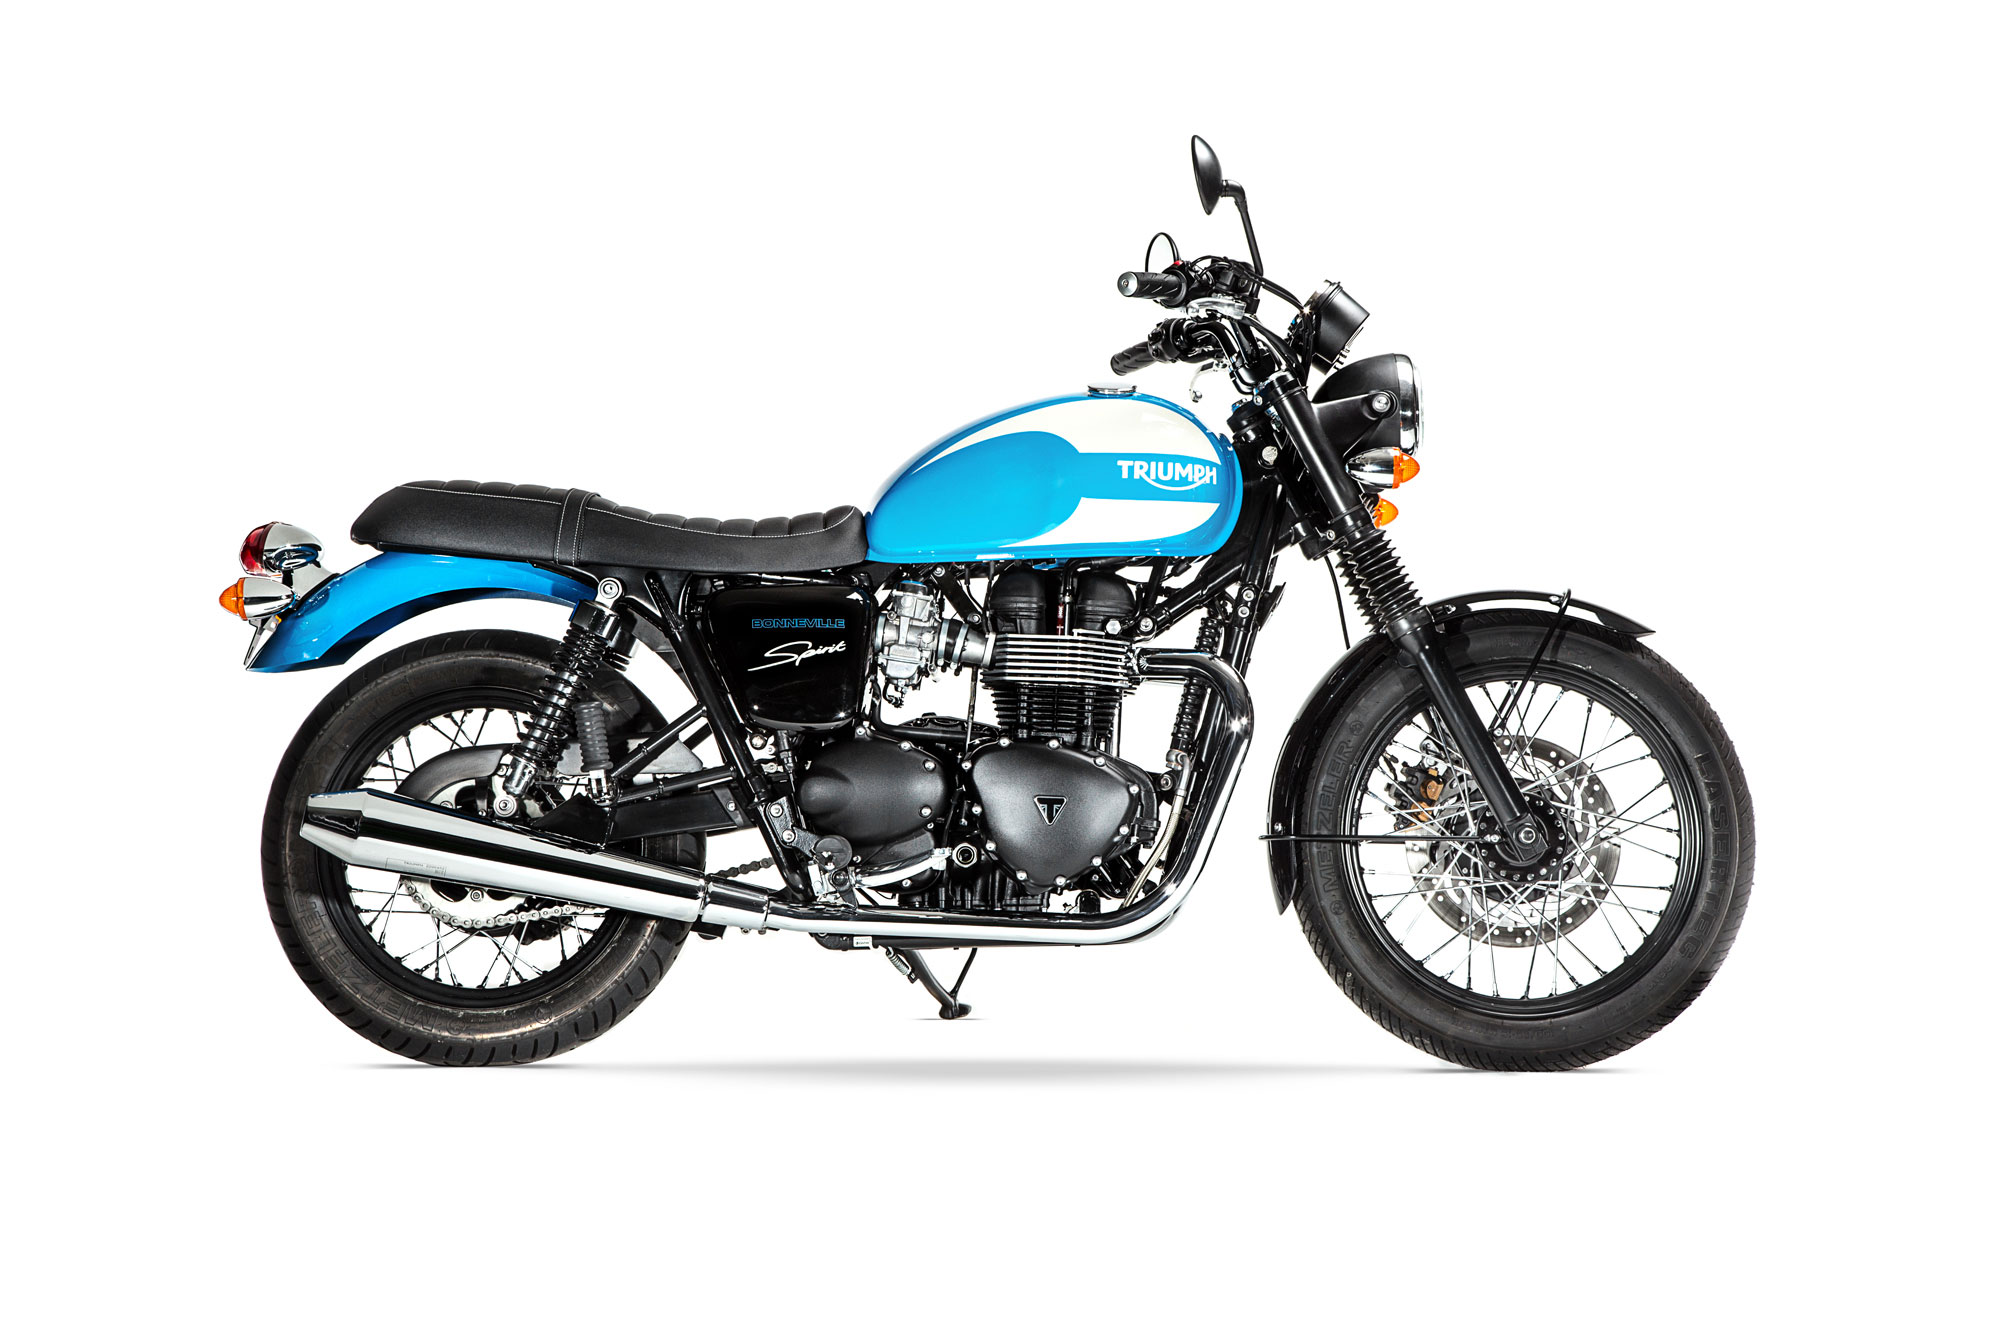 2015 triumph bonneville t100 spirit special review. Black Bedroom Furniture Sets. Home Design Ideas